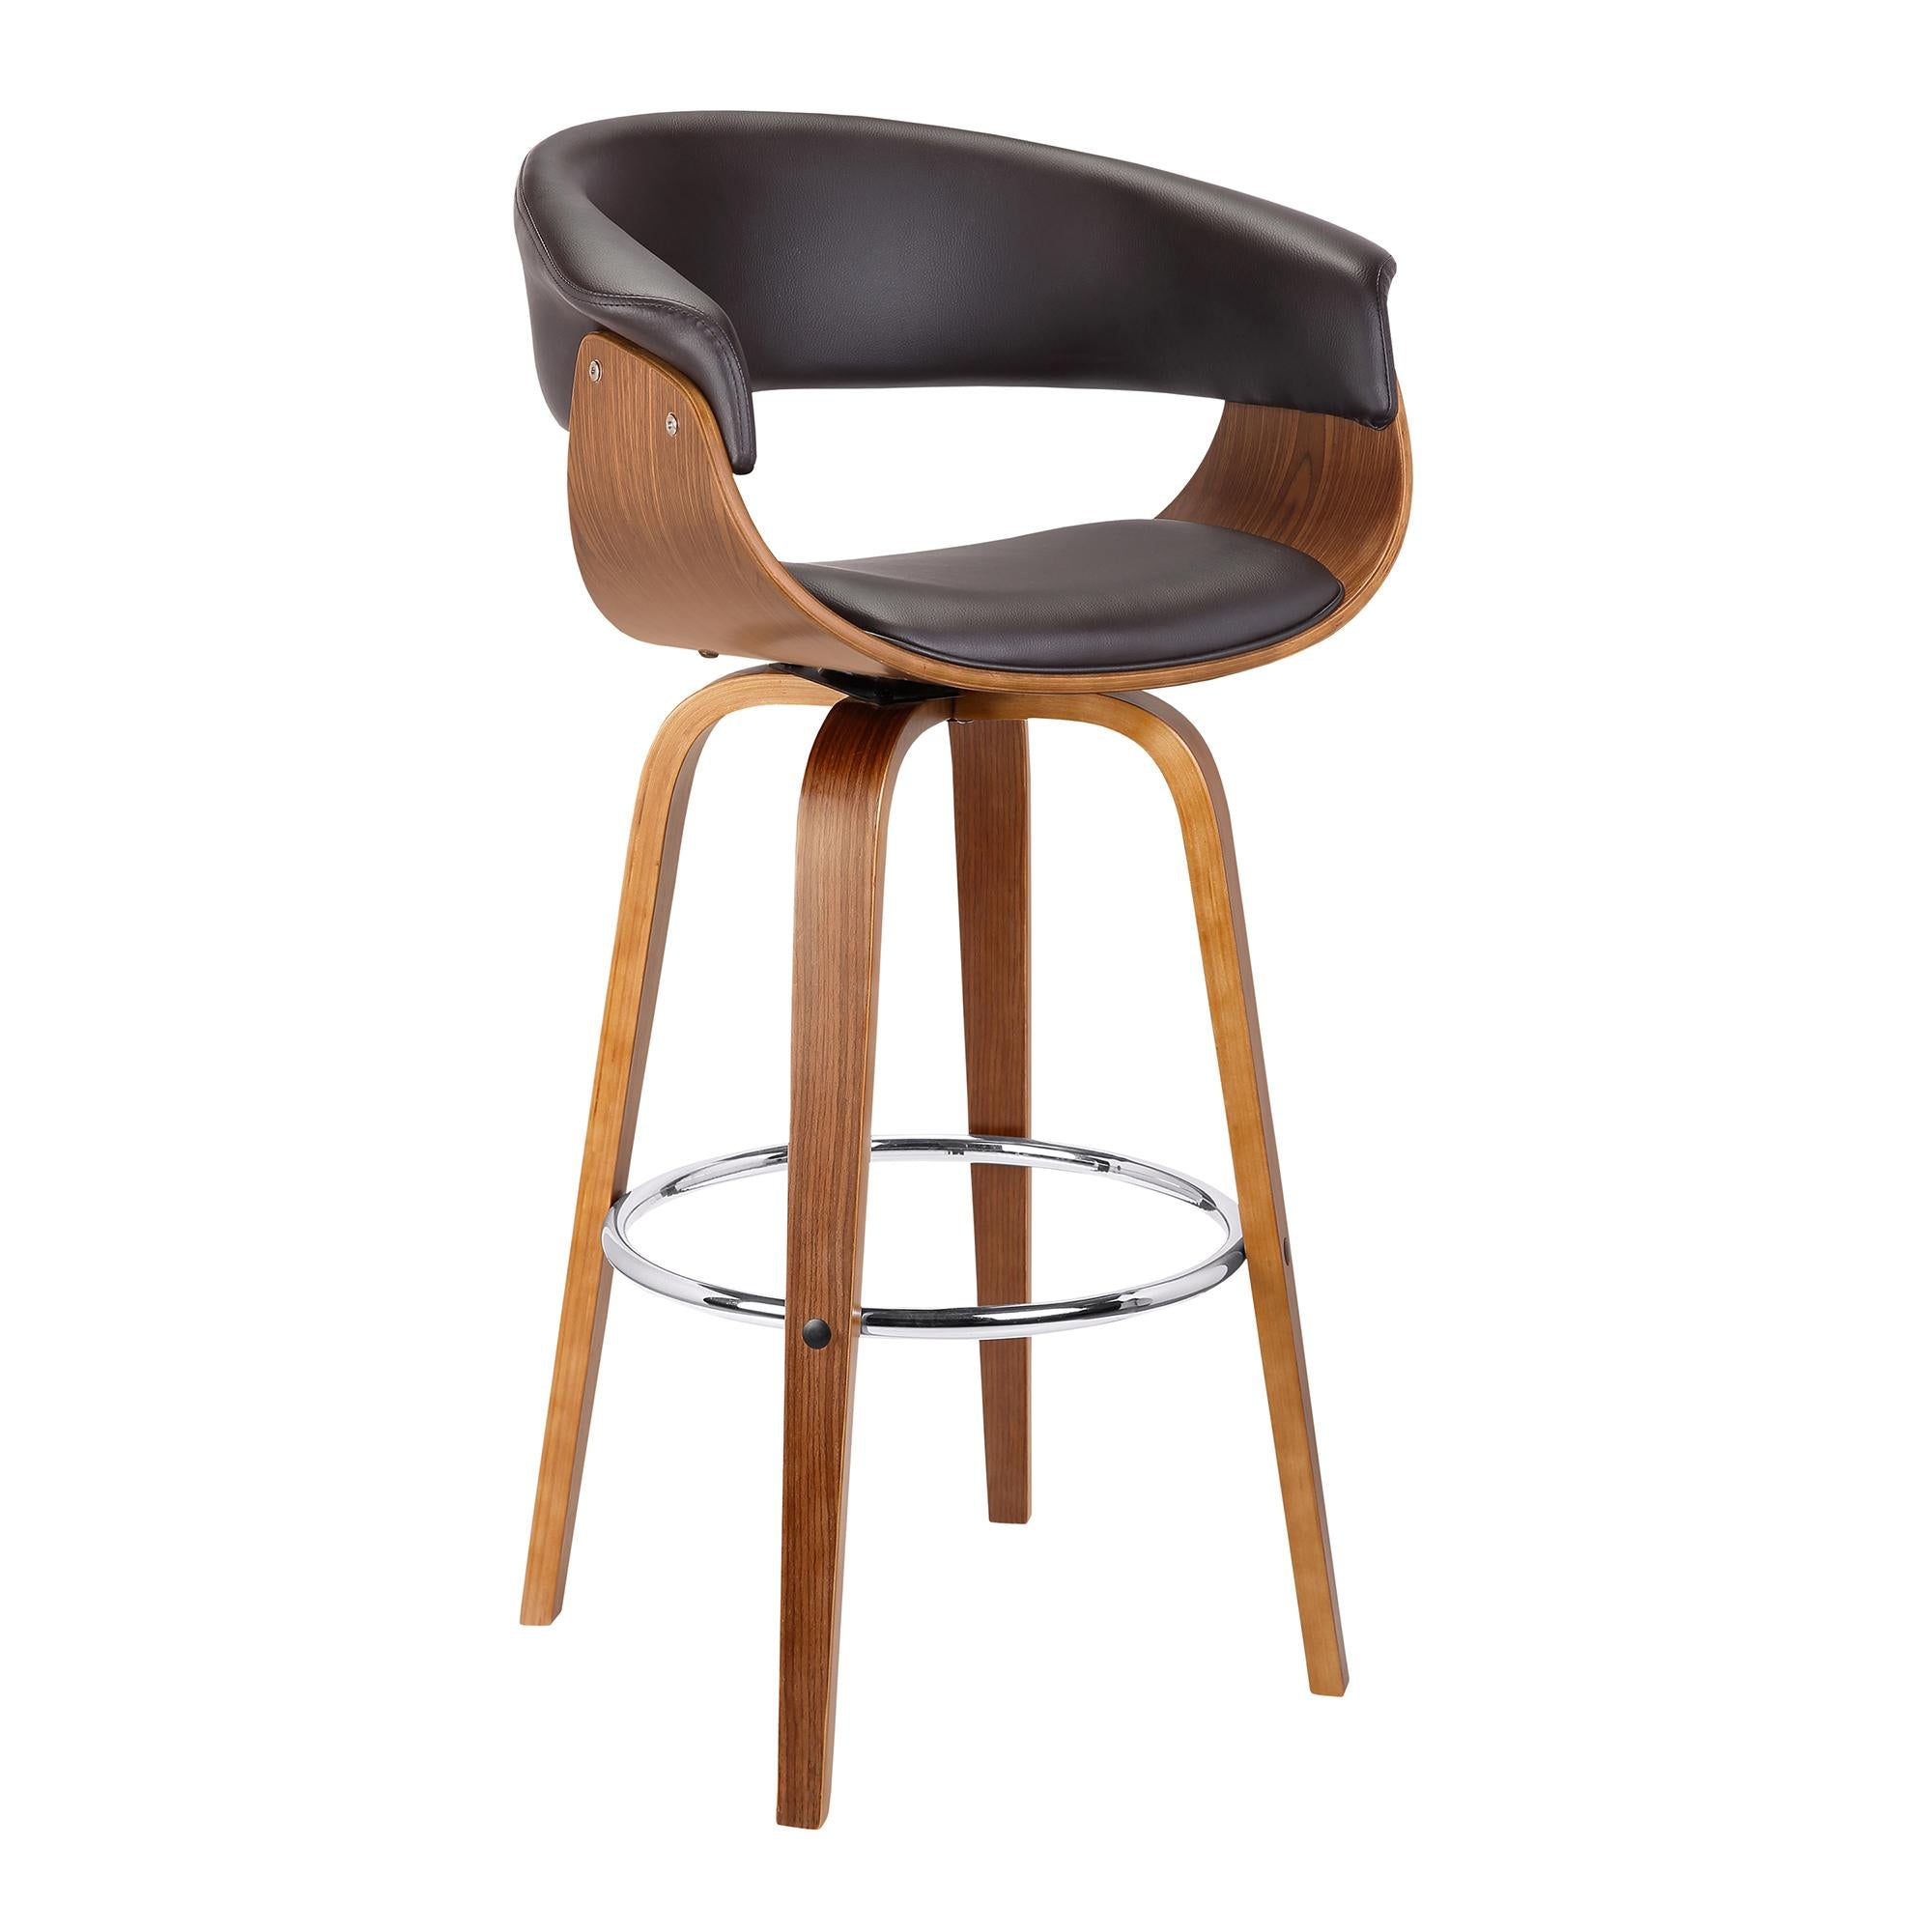 Armen Living Julyssa 26' Mid-Century Swivel Counter Height Barstool in Brown Faux Leather with Walnut Wood